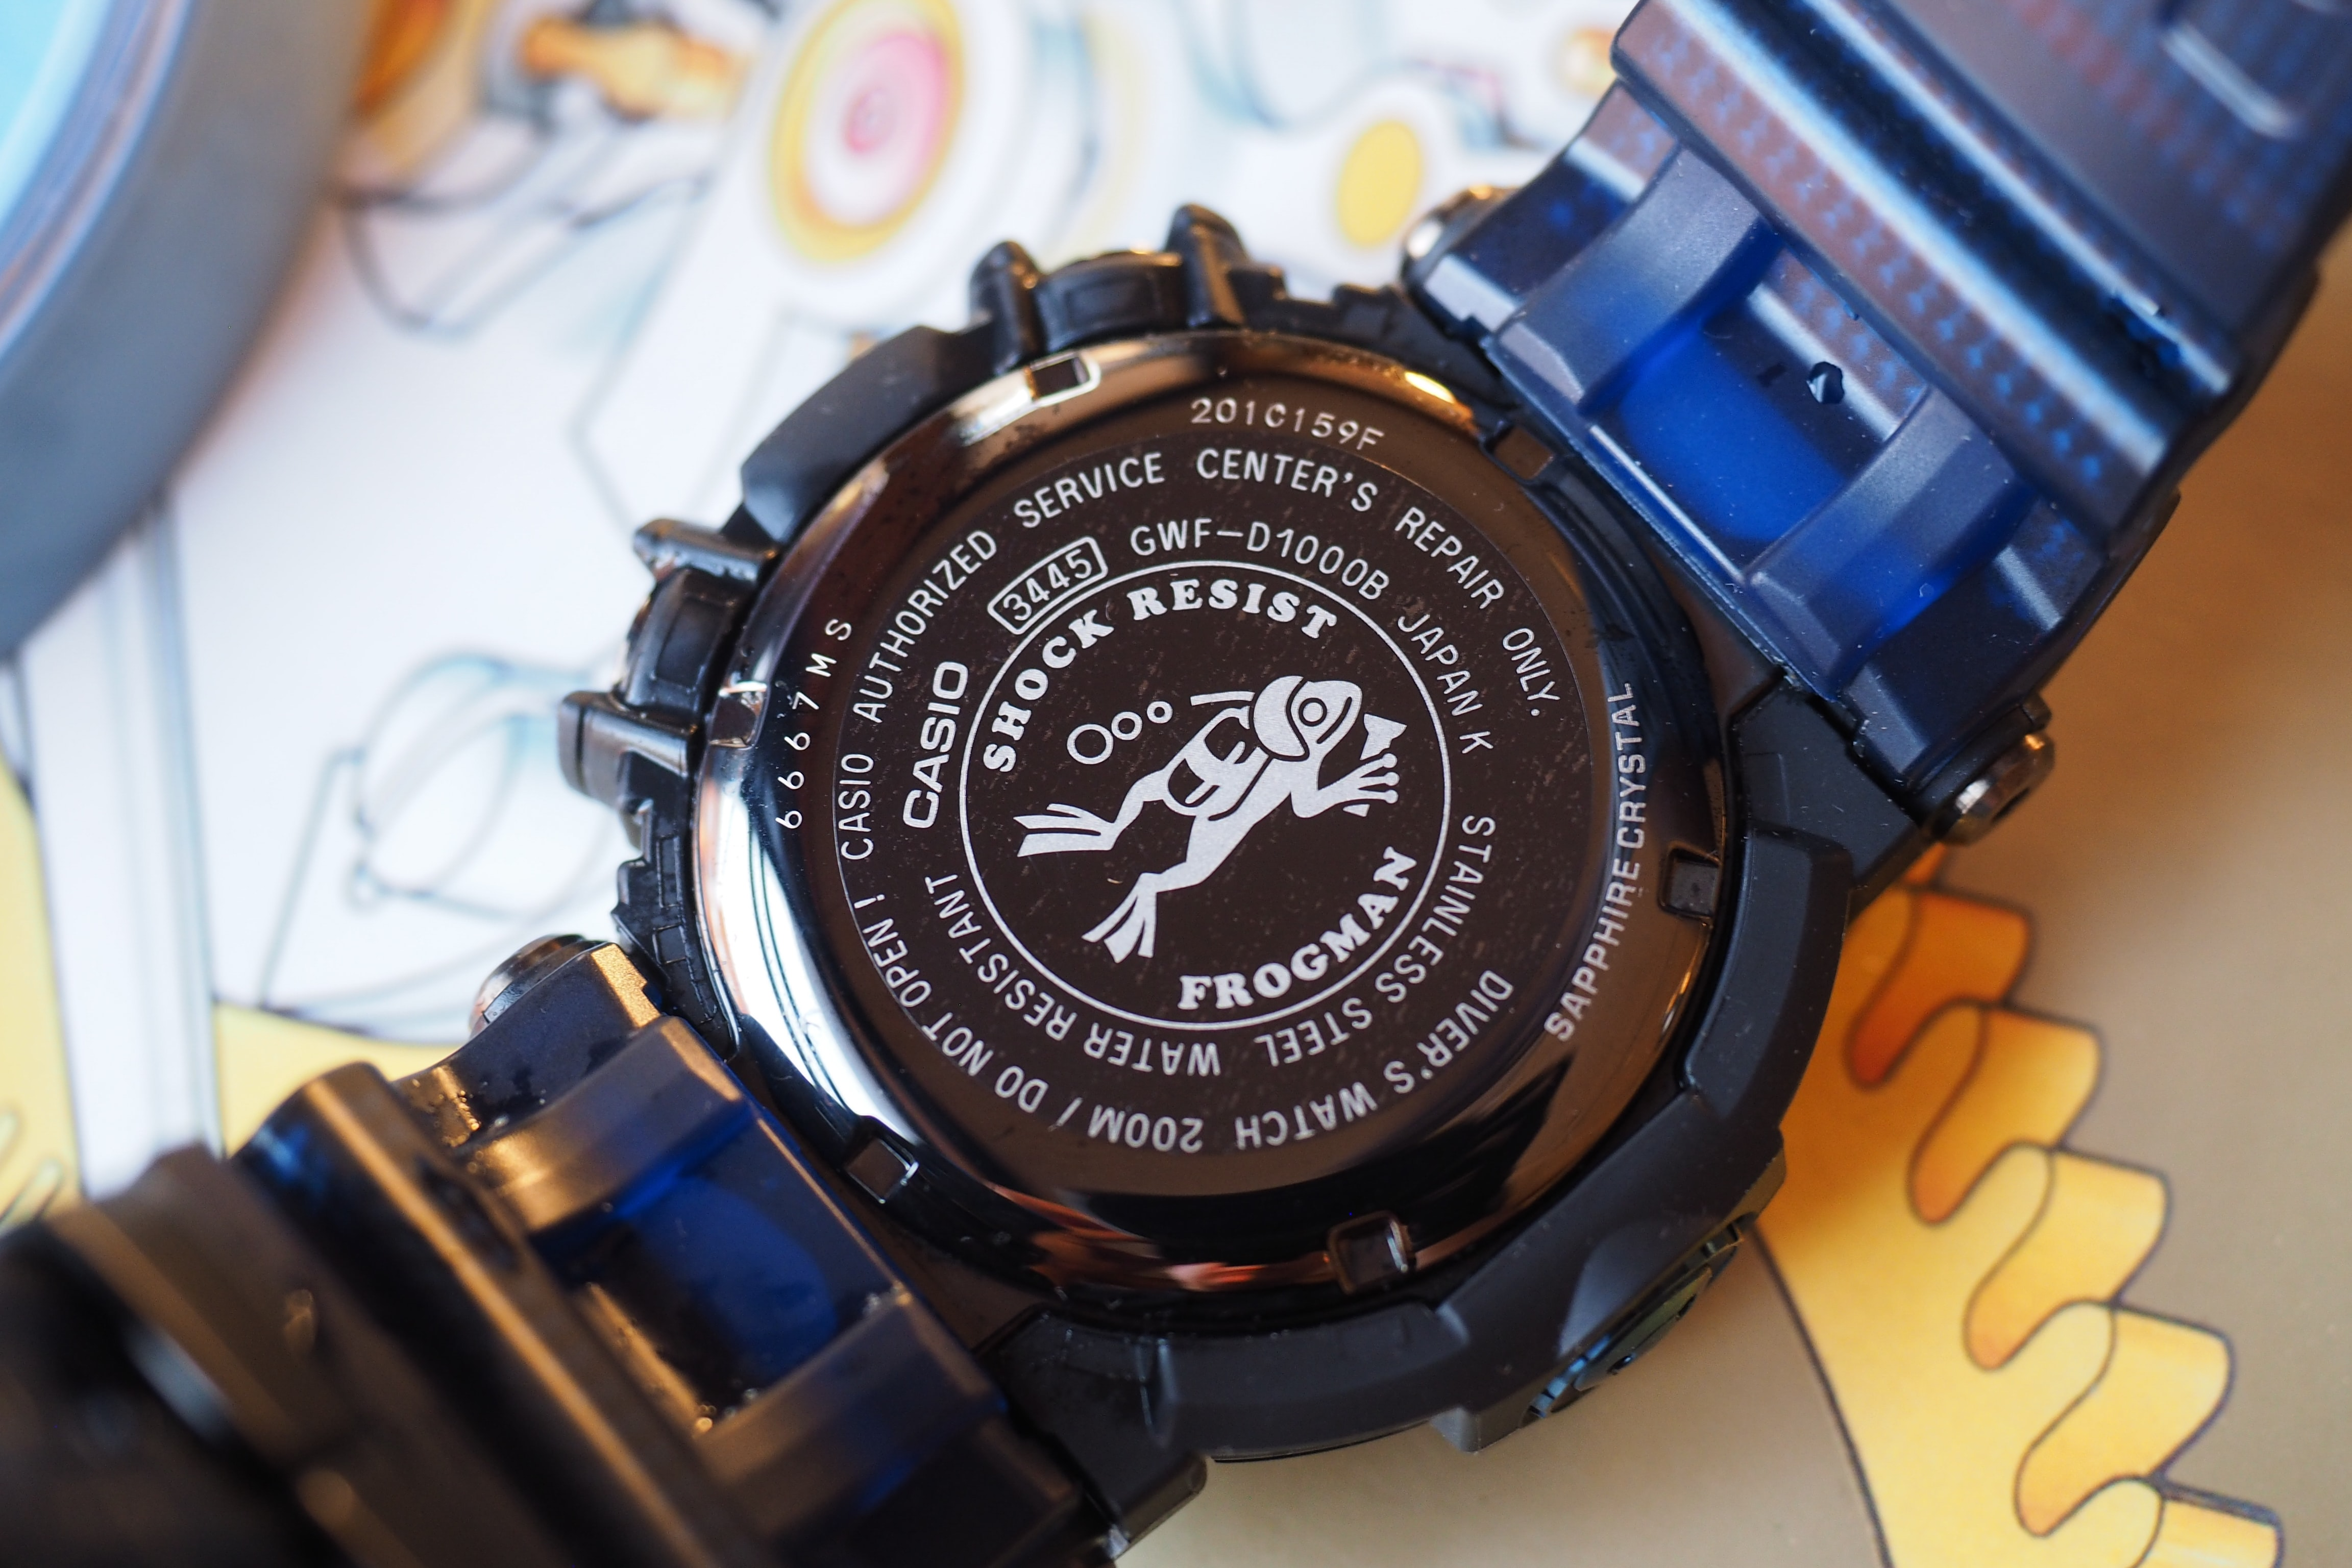 G-Shock Frogman GWF-D1000B case back A Week On The Wrist: The Casio 'Master Of G' G-Shock Frogman GWF-D1000B, A Great Watch To Wear For Punching A T. Rex A Week On The Wrist: The Casio 'Master Of G' G-Shock Frogman GWF-D1000B, A Great Watch To Wear For Punching A T. Rex P1091523